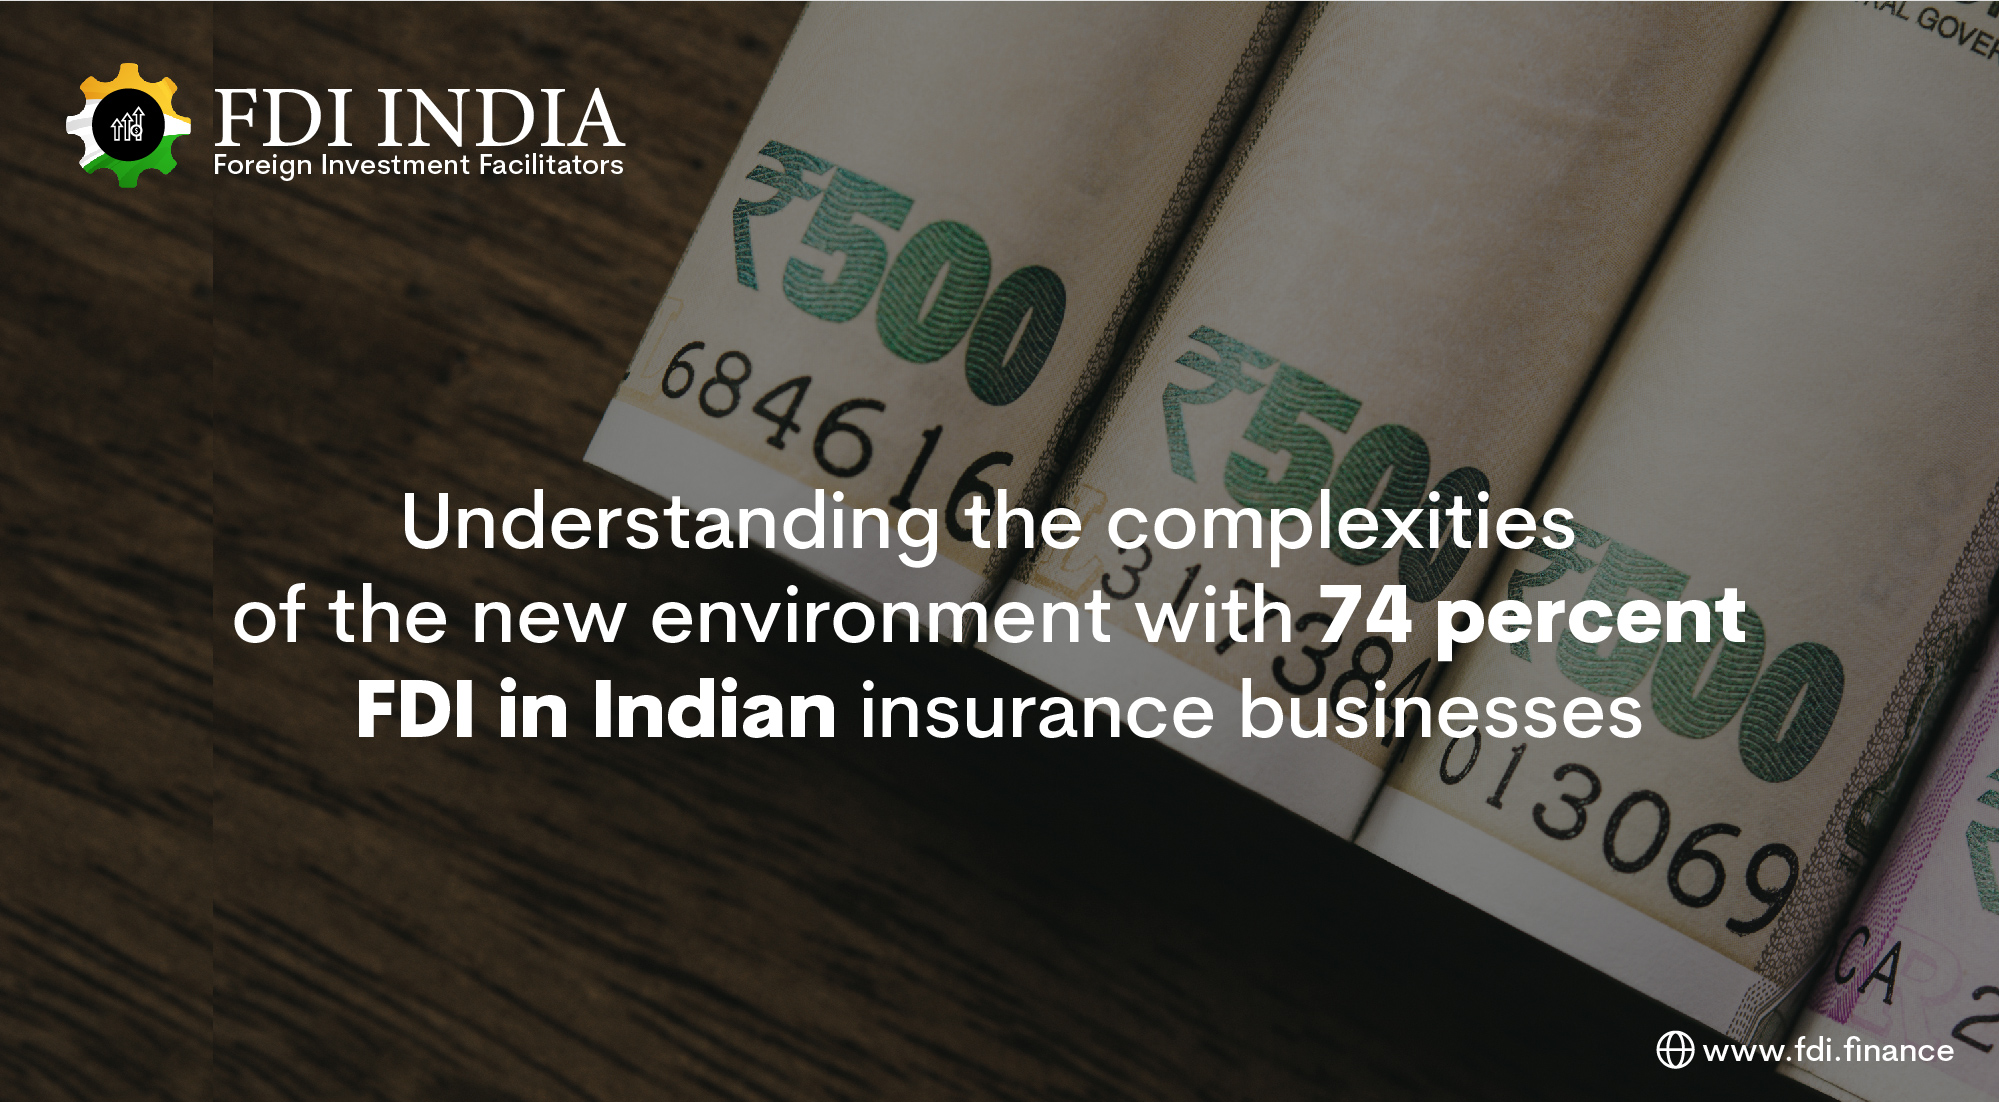 Understanding the Complexities of the New Environment With 74 Percent FDI in Indian Insurance Businesses